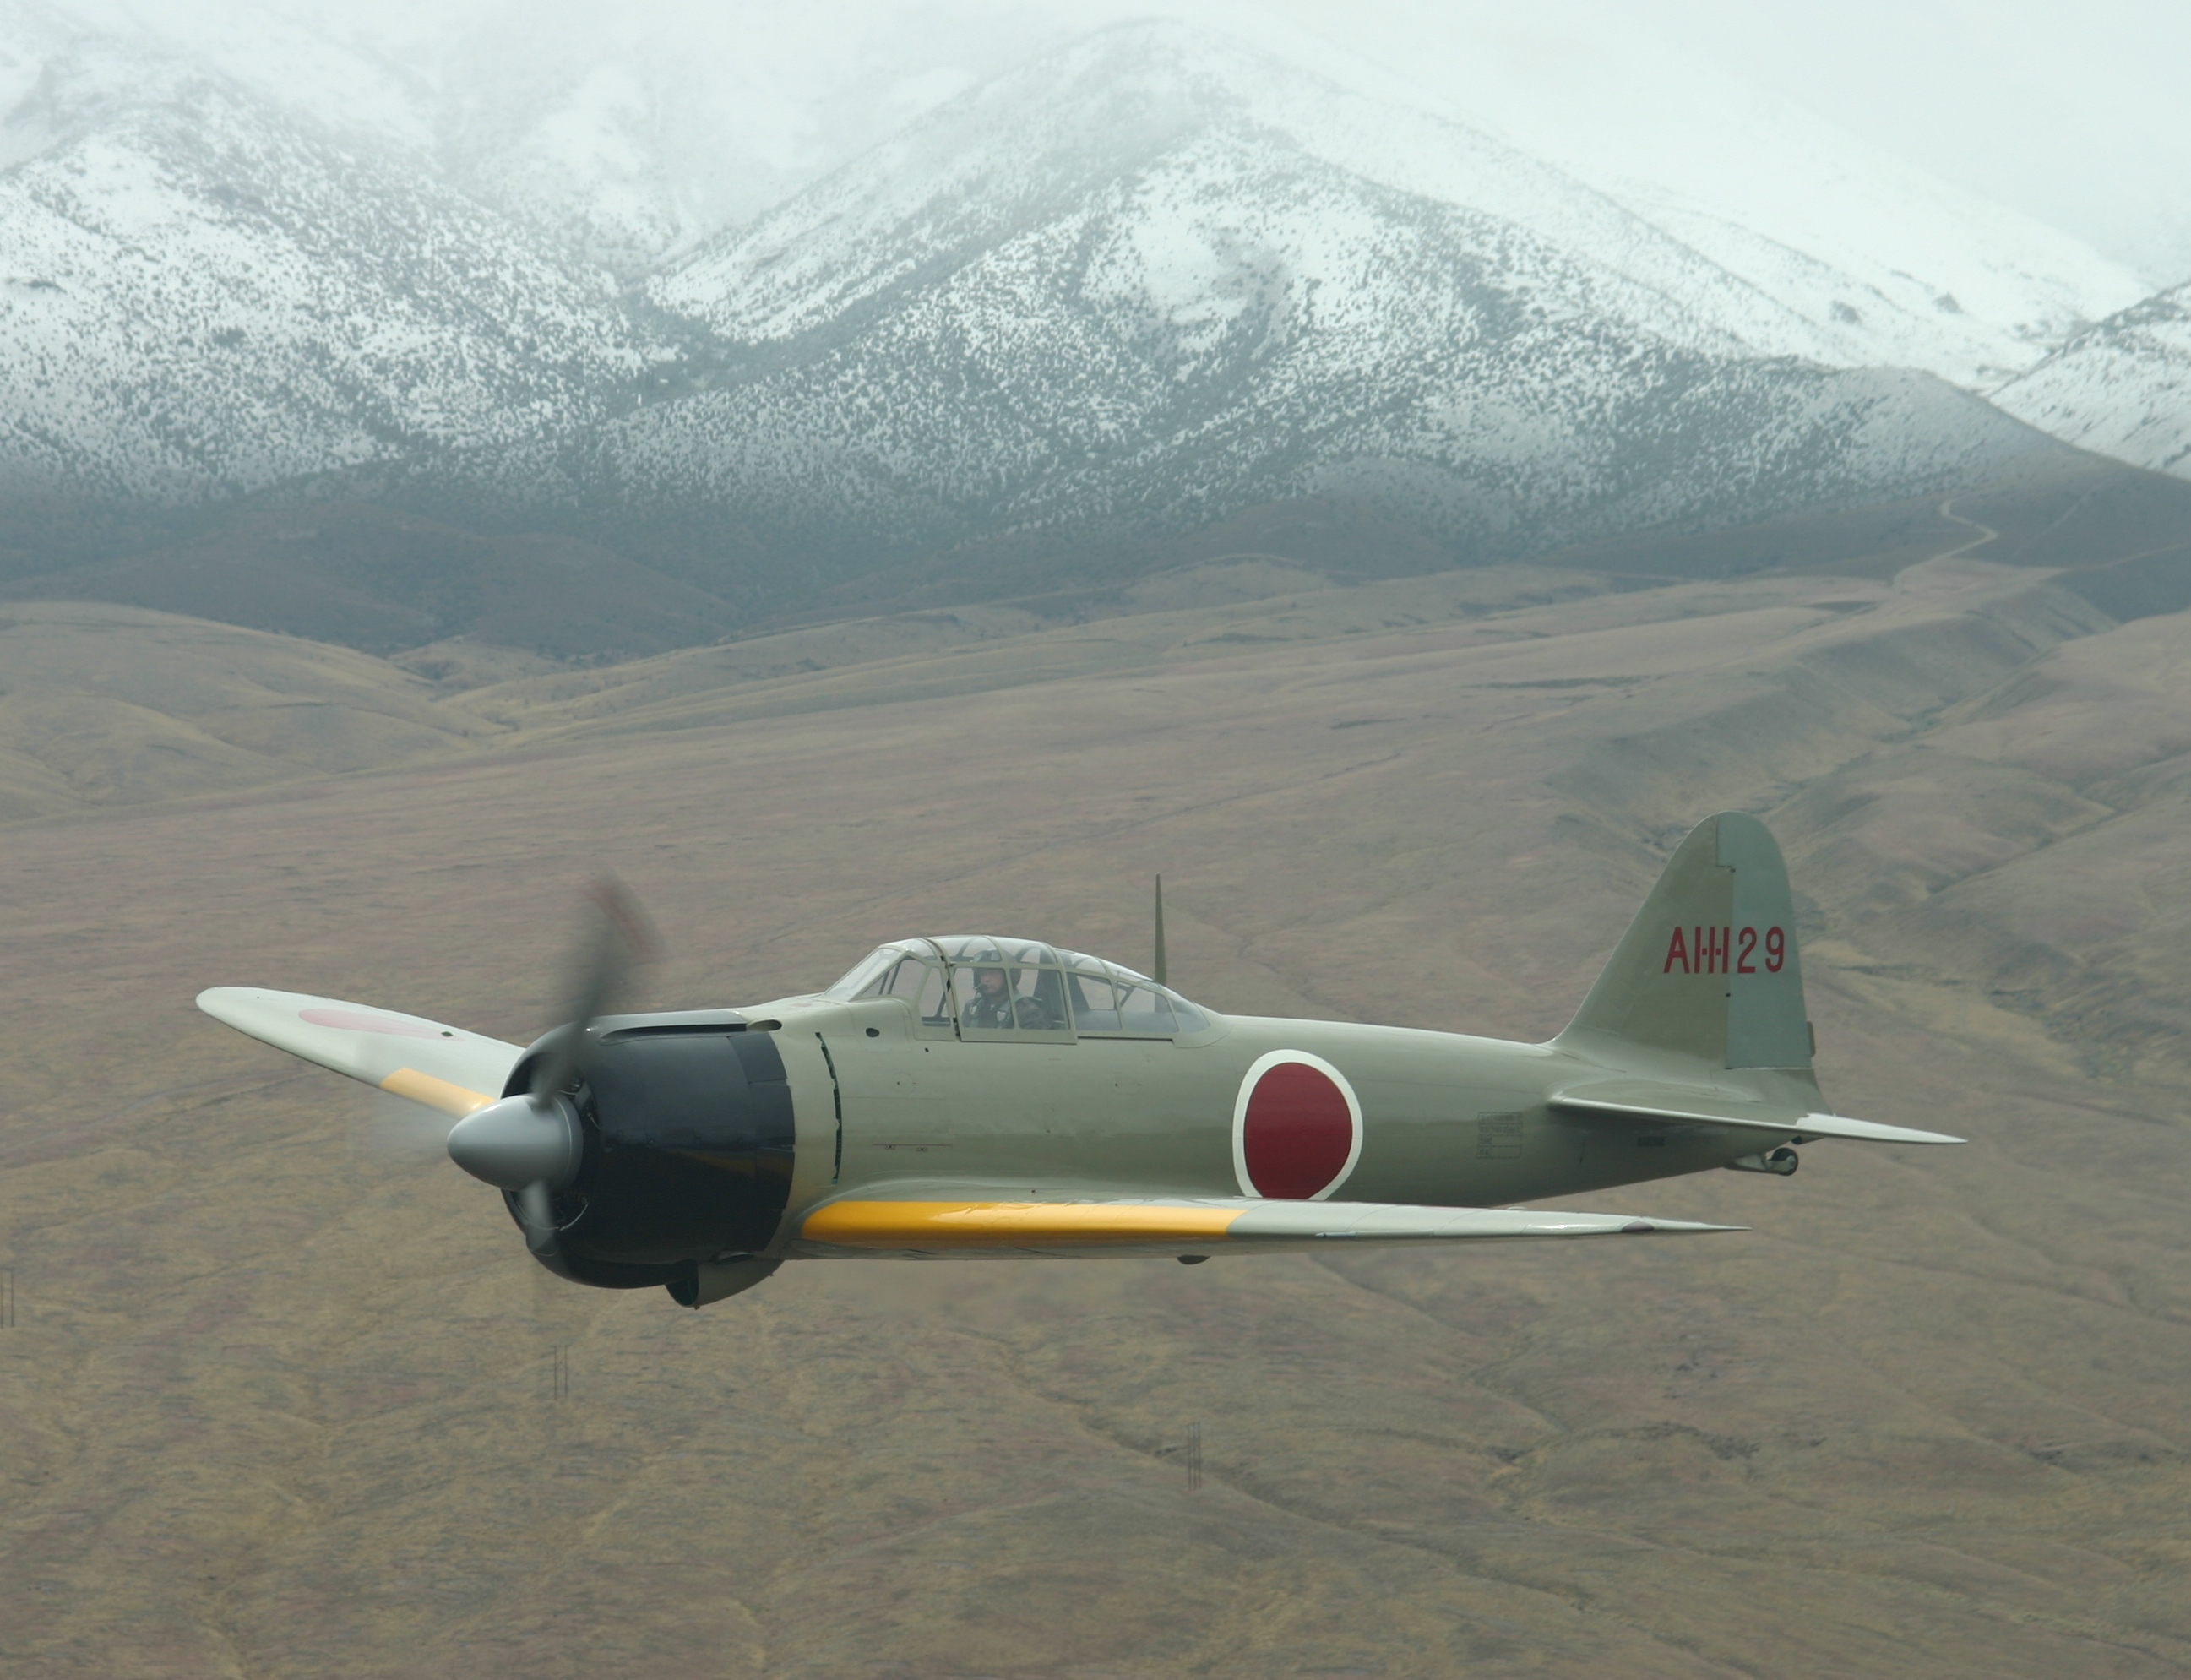 A perfectly preserved Mitsubishi A6M Zero aircraft flown near towering mountain peaks